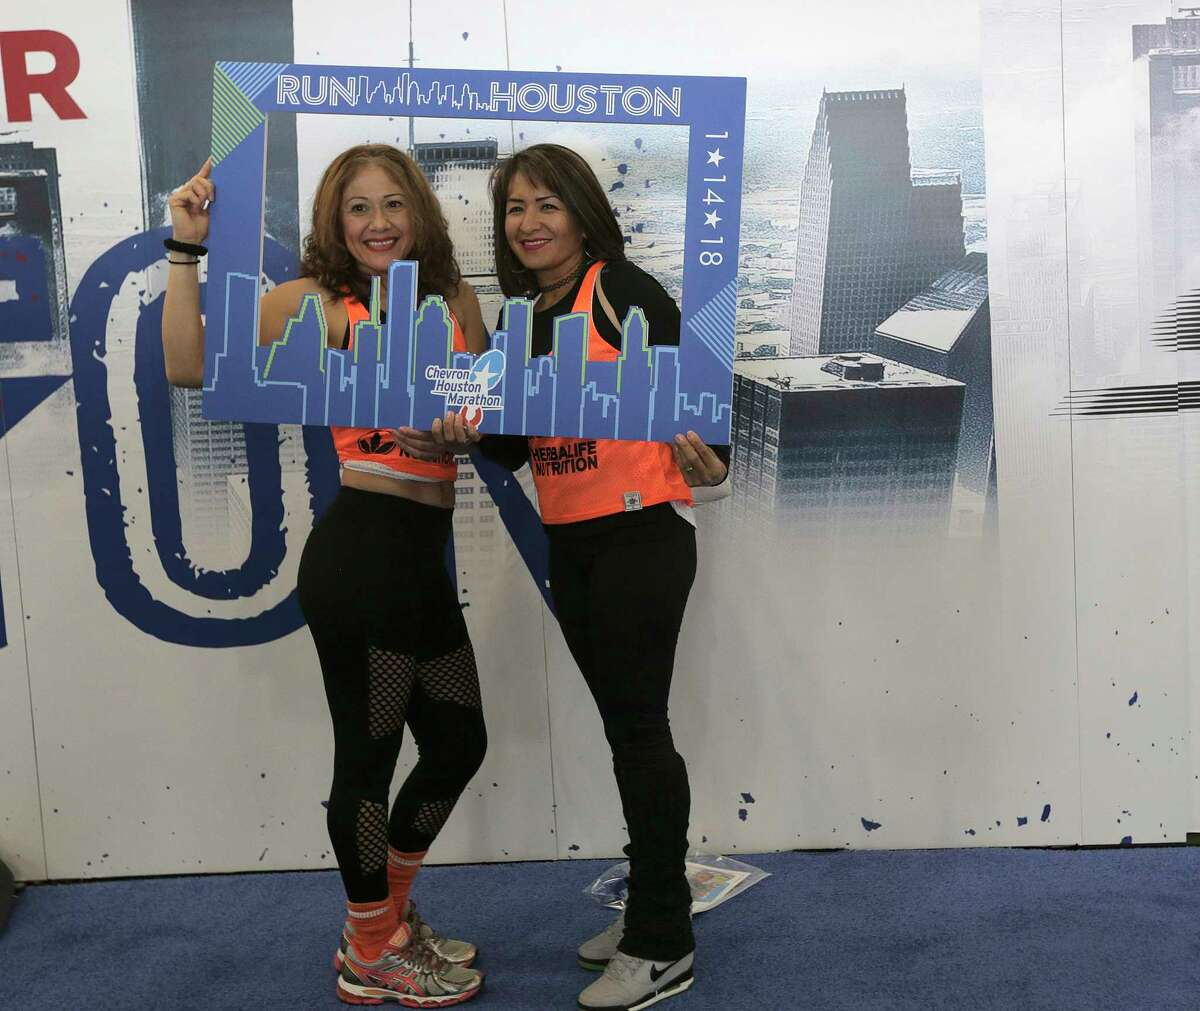 Blanca Villarreal, left, and Erika Clemente pose for a photo in the expo for the 2018 Chevron Houston Marathon and Aramco Houston Half Marathon at George R. Brown Convention Center on Friday, Jan. 12, 2018, in Houston. ( Elizabeth Conley / Houston Chronicle )